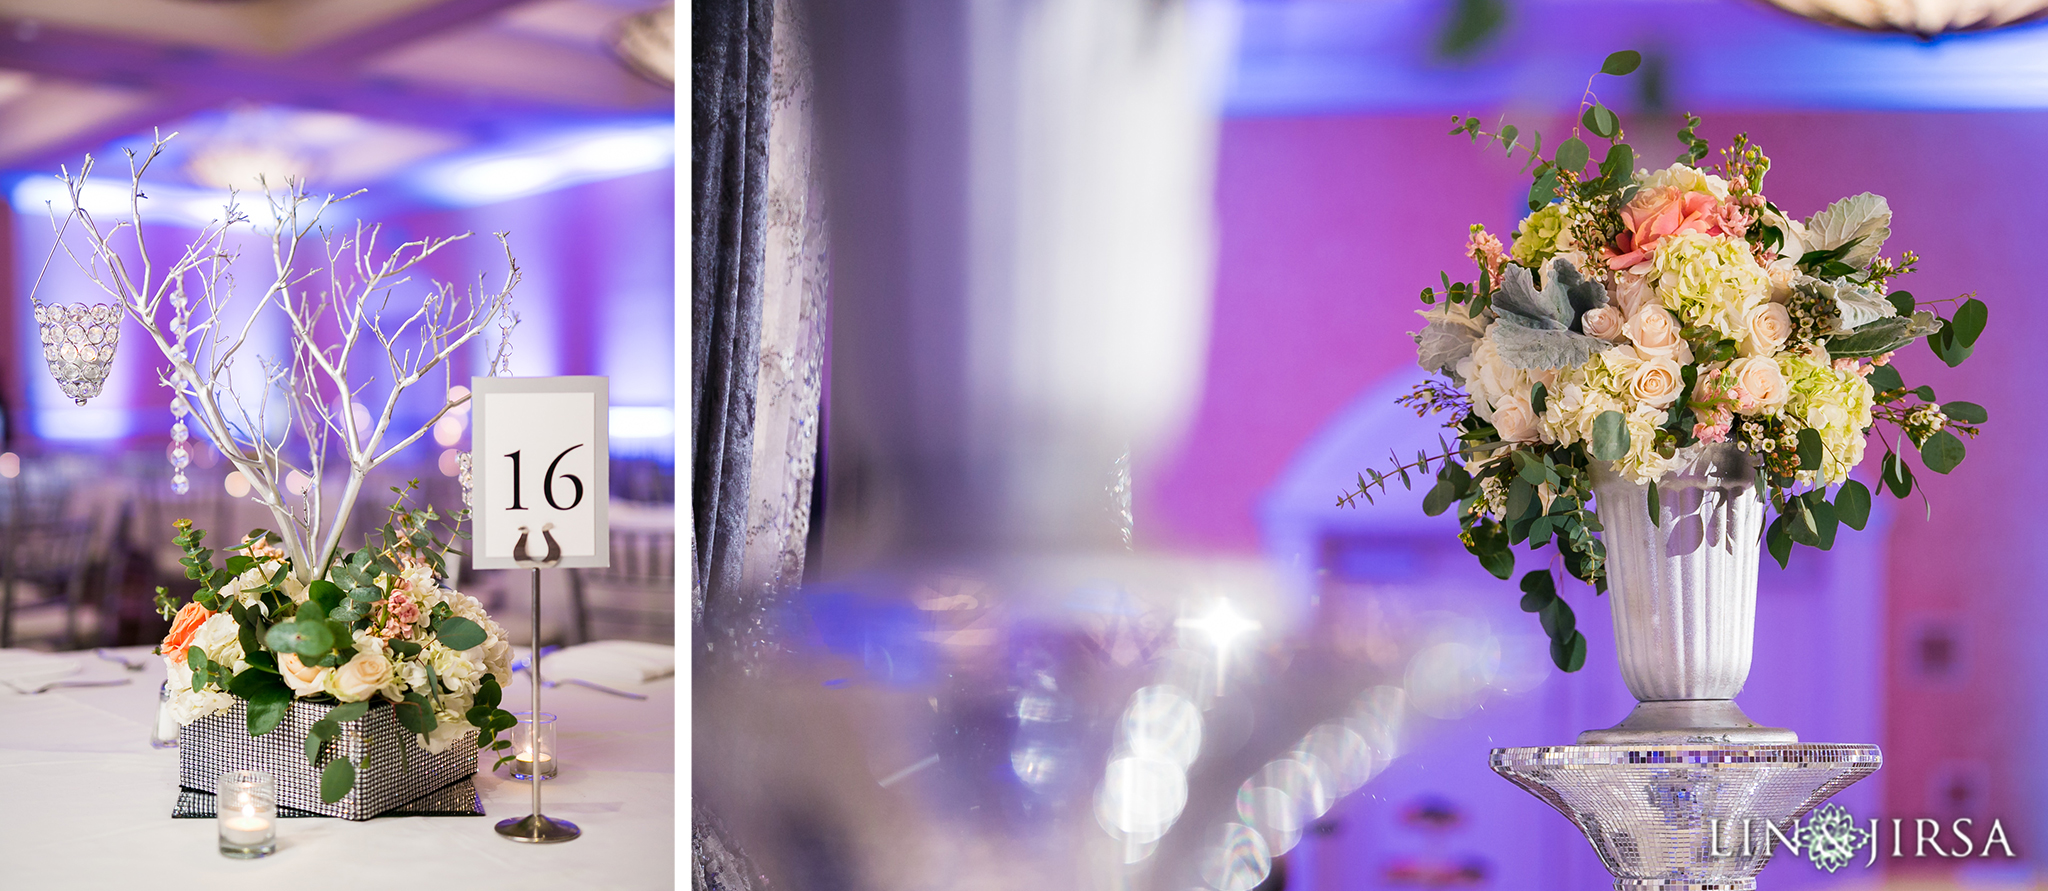 12-doubletree-anaheim-indian-fusion-wedding-reception-photography